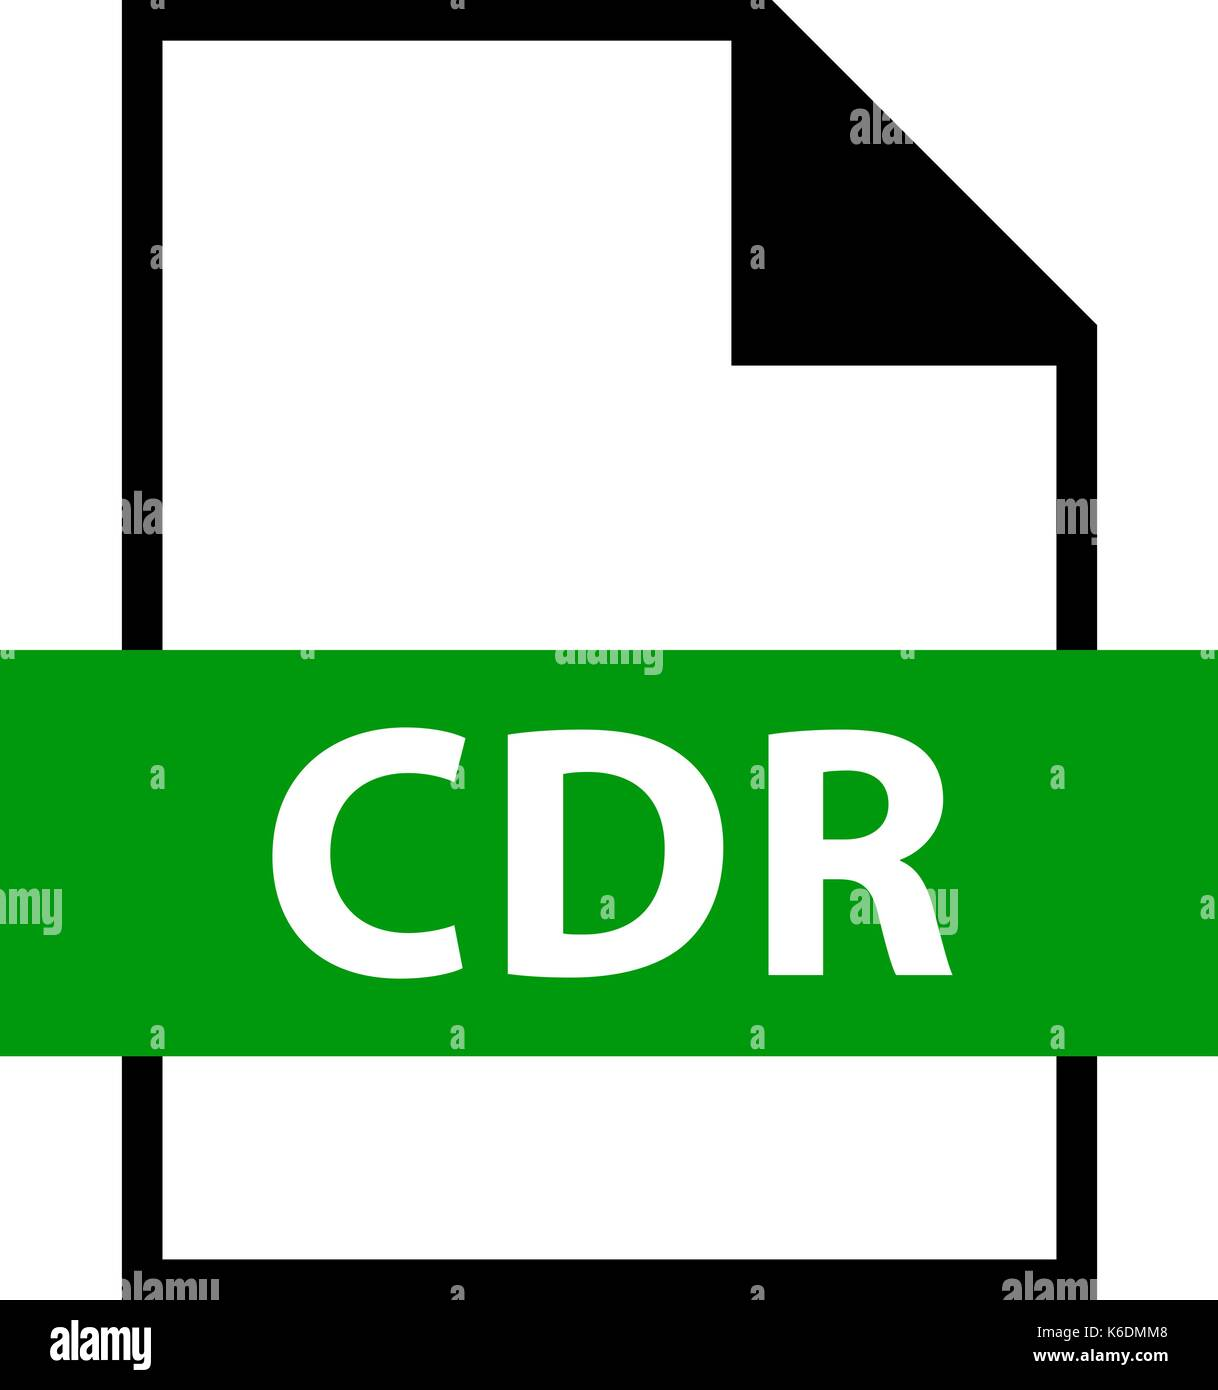 Use it in all your designs. Filename extension icon CDR CorelDRAW file format in flat style. Quick and easy recolorable shape. Vector illustration - Stock Image